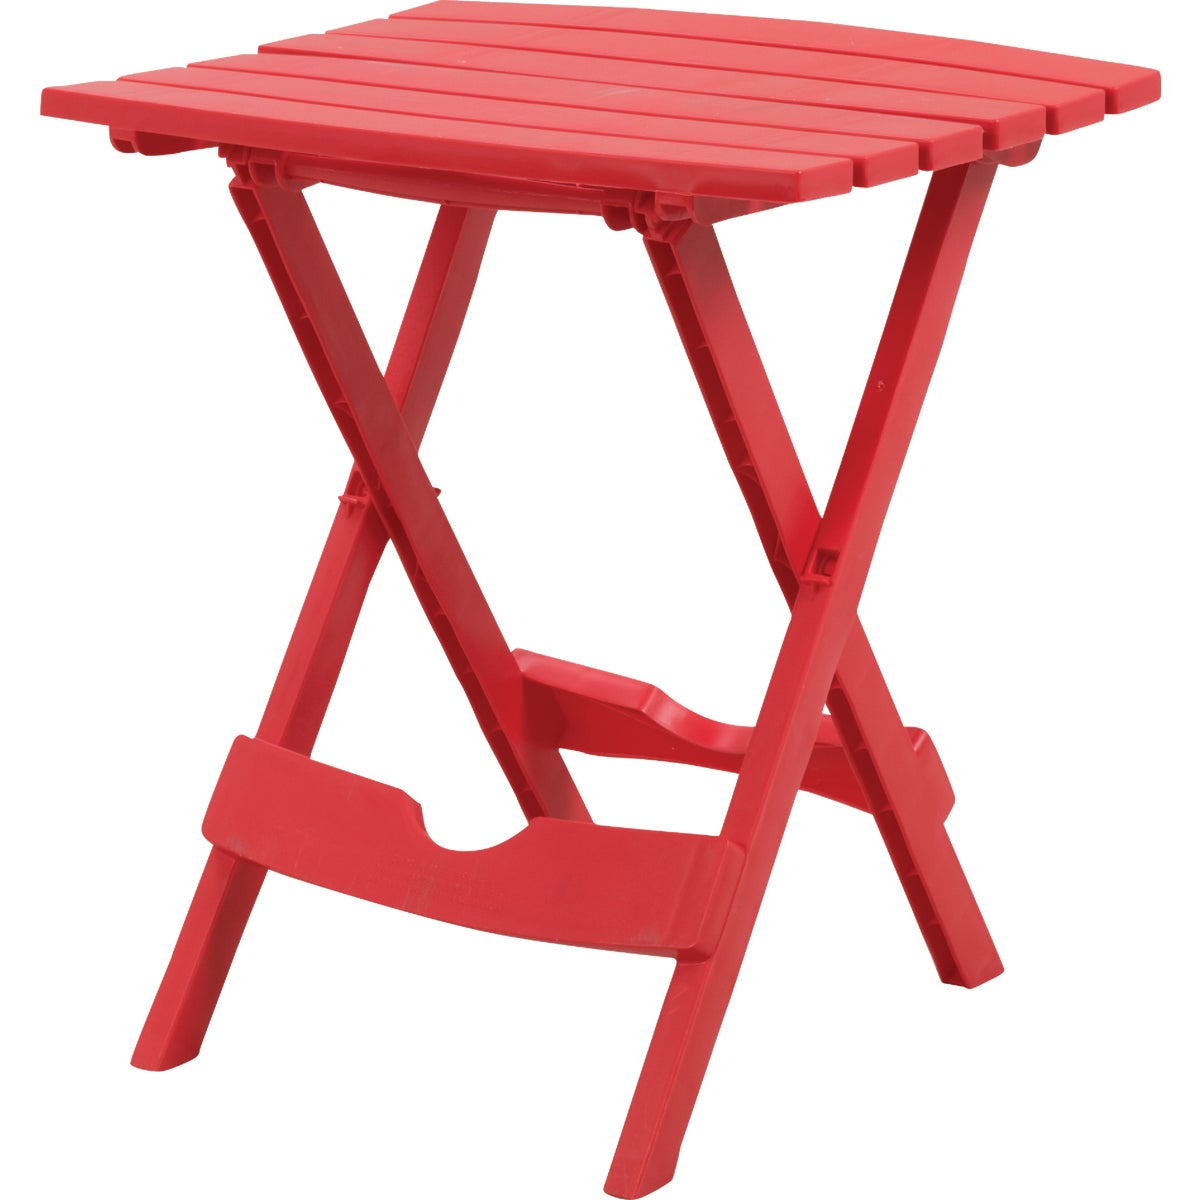 CHERRY QUIK FOLD TABLE - 8500-26-3731 by Adams Mfg Patio Furn